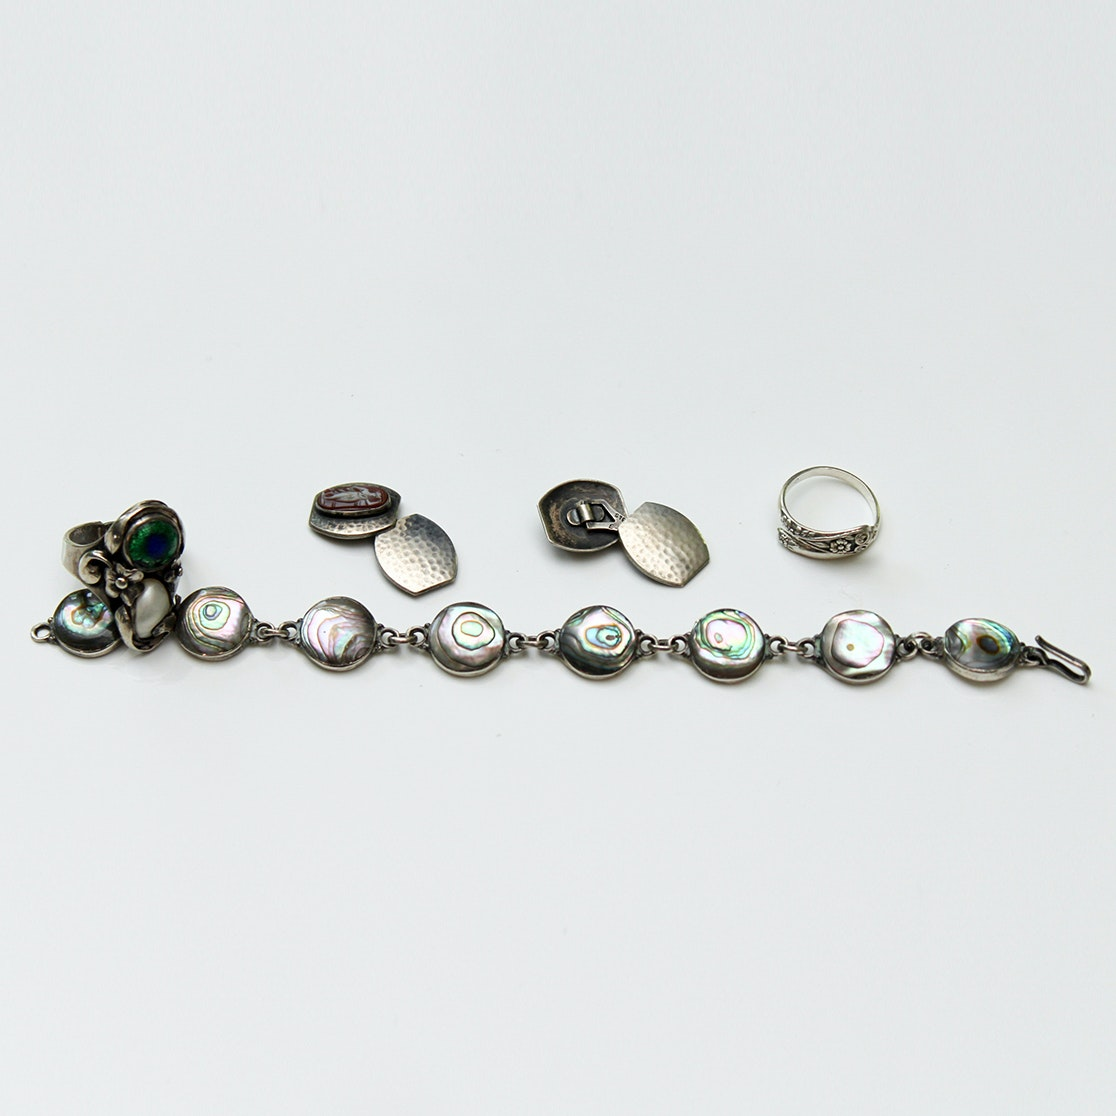 Sterling Silver, Abalone and Agate Bracelets, Ring and Cufflinks